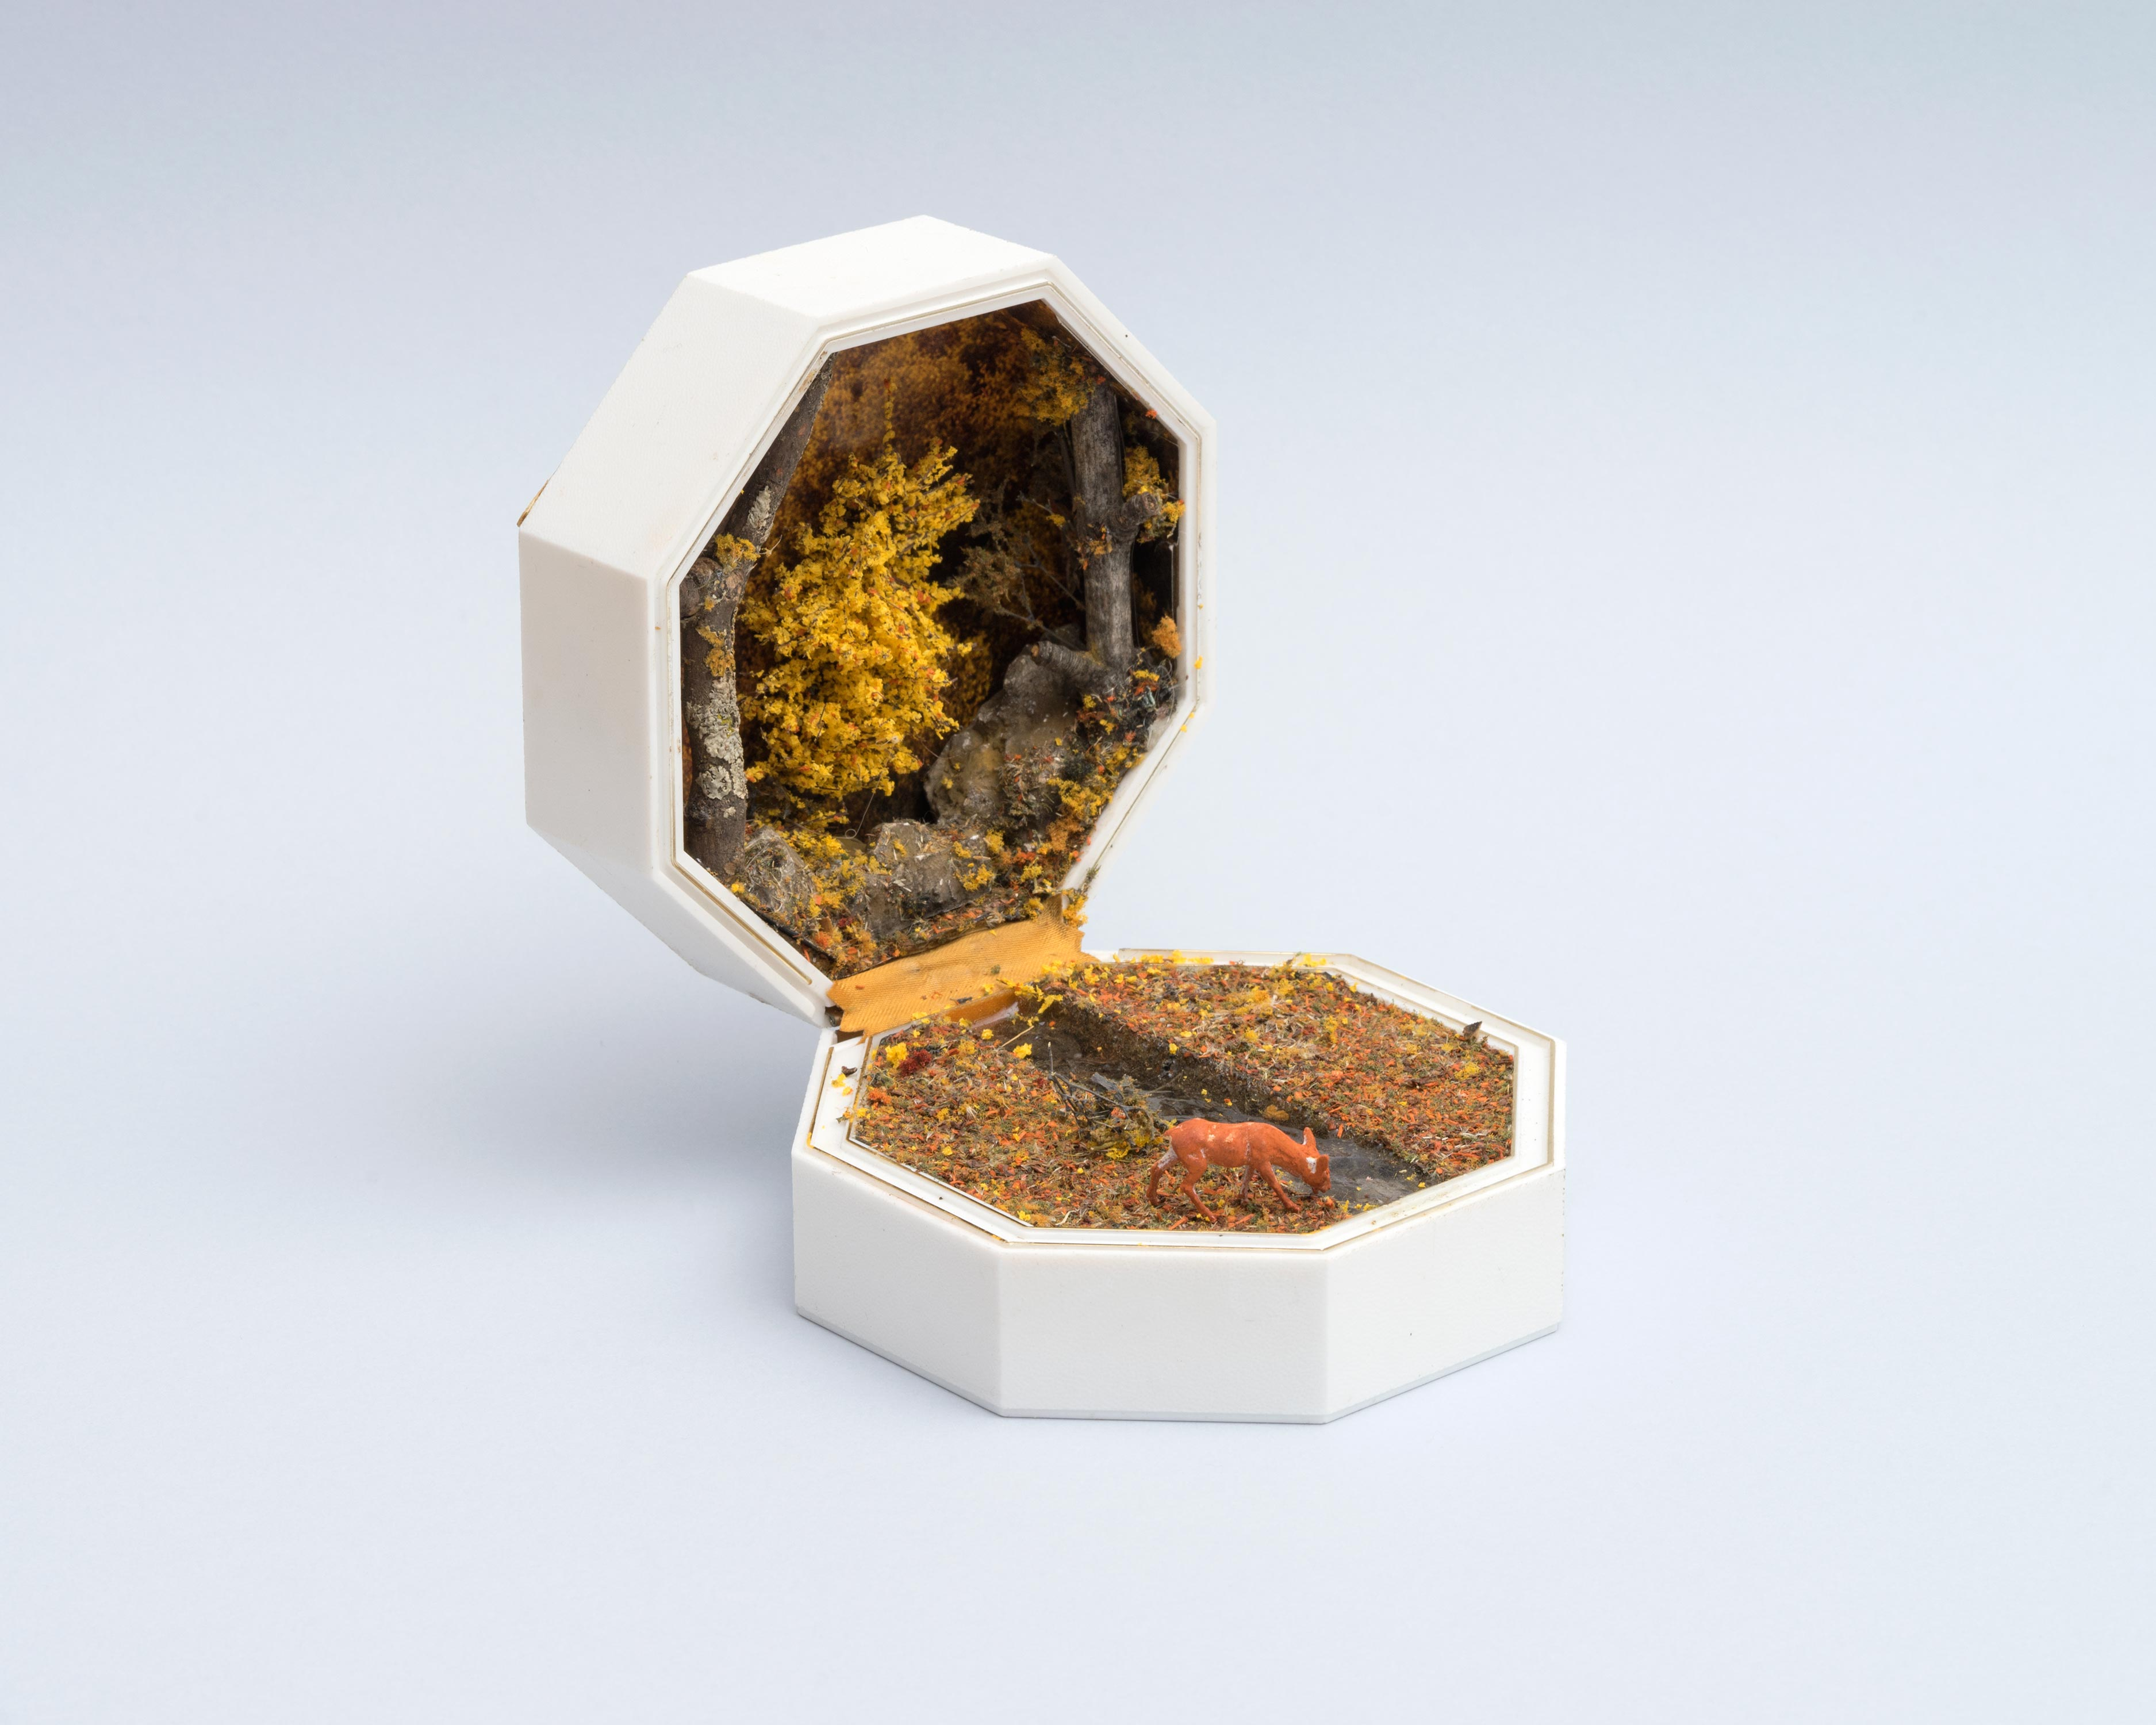 Curtis Talwst Santiago<br>Nanganesey Creek With Deer<br>2016<br>Mixed media diorama in reclaimed jewelry box<br>4.375 x 4.375 x 5.5  in (11 x 11 x 14 cm)